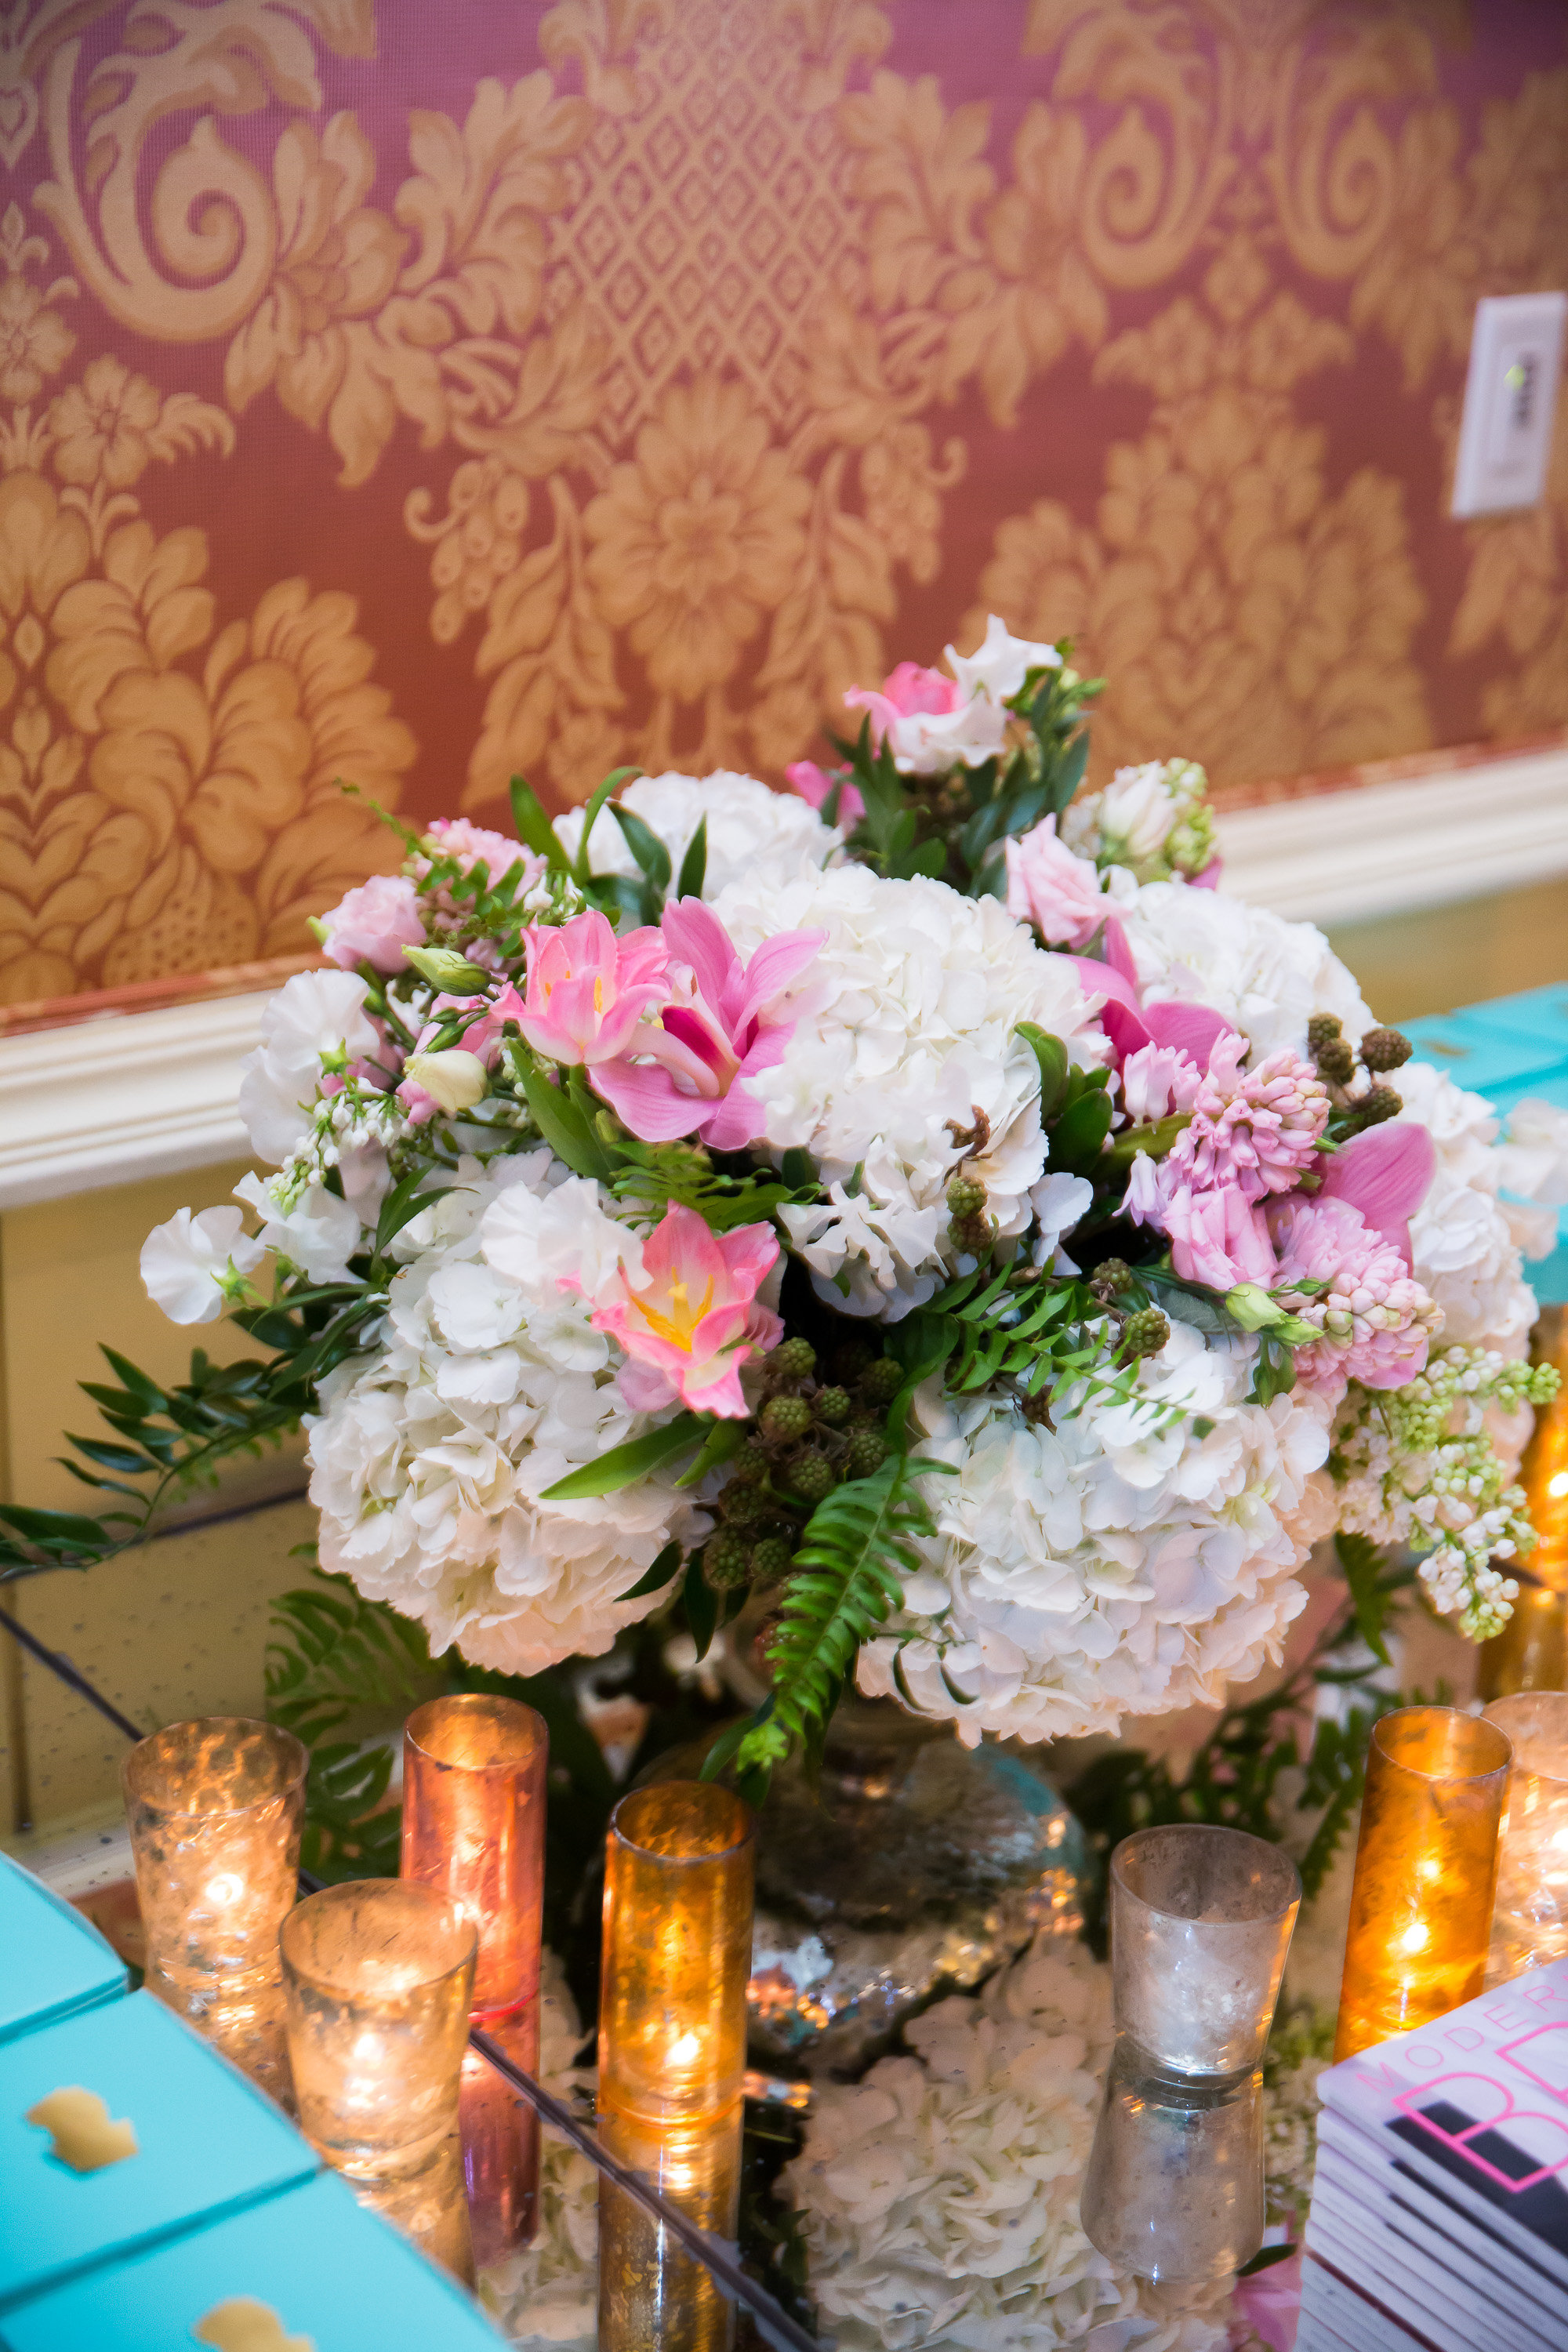 Afternoon of Bridal Luxury at The Ritz-Carlton, dallas - Modern Luxury Weddings Dallas